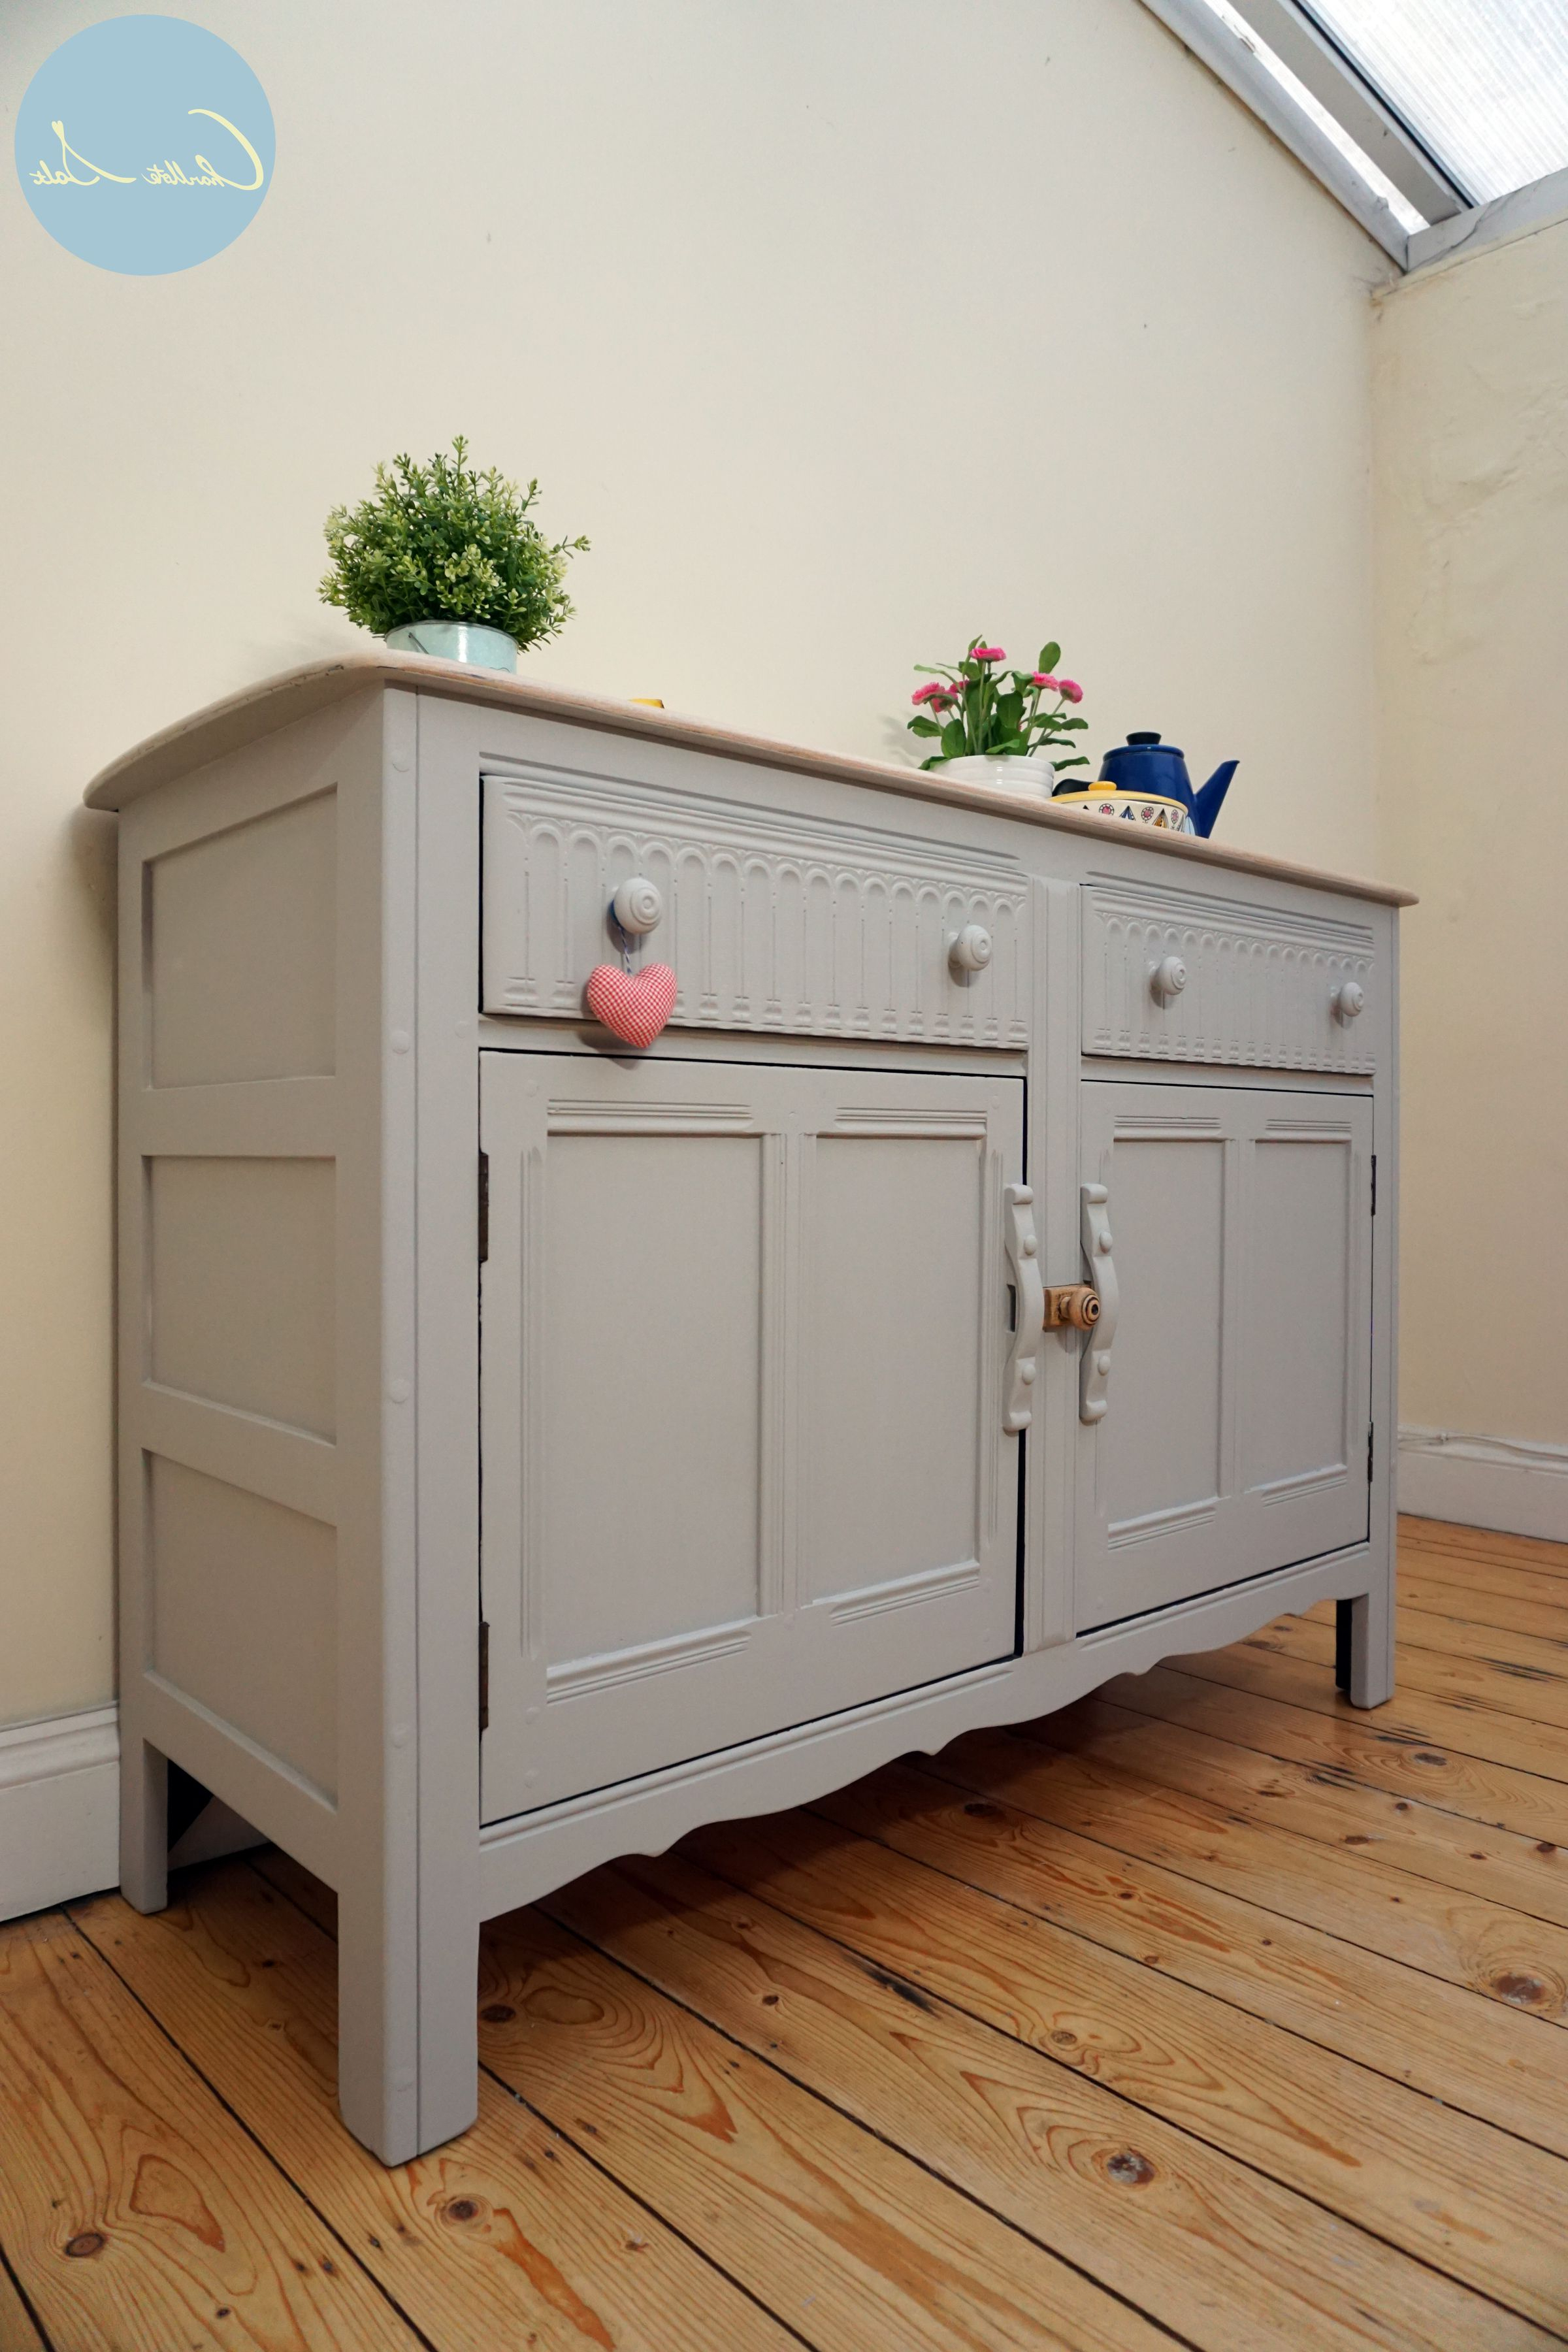 Ercol Sideboard Is Painted In Laura Ashley Dark Dove Grey Within White And Grey Sideboards (Gallery 16 of 20)